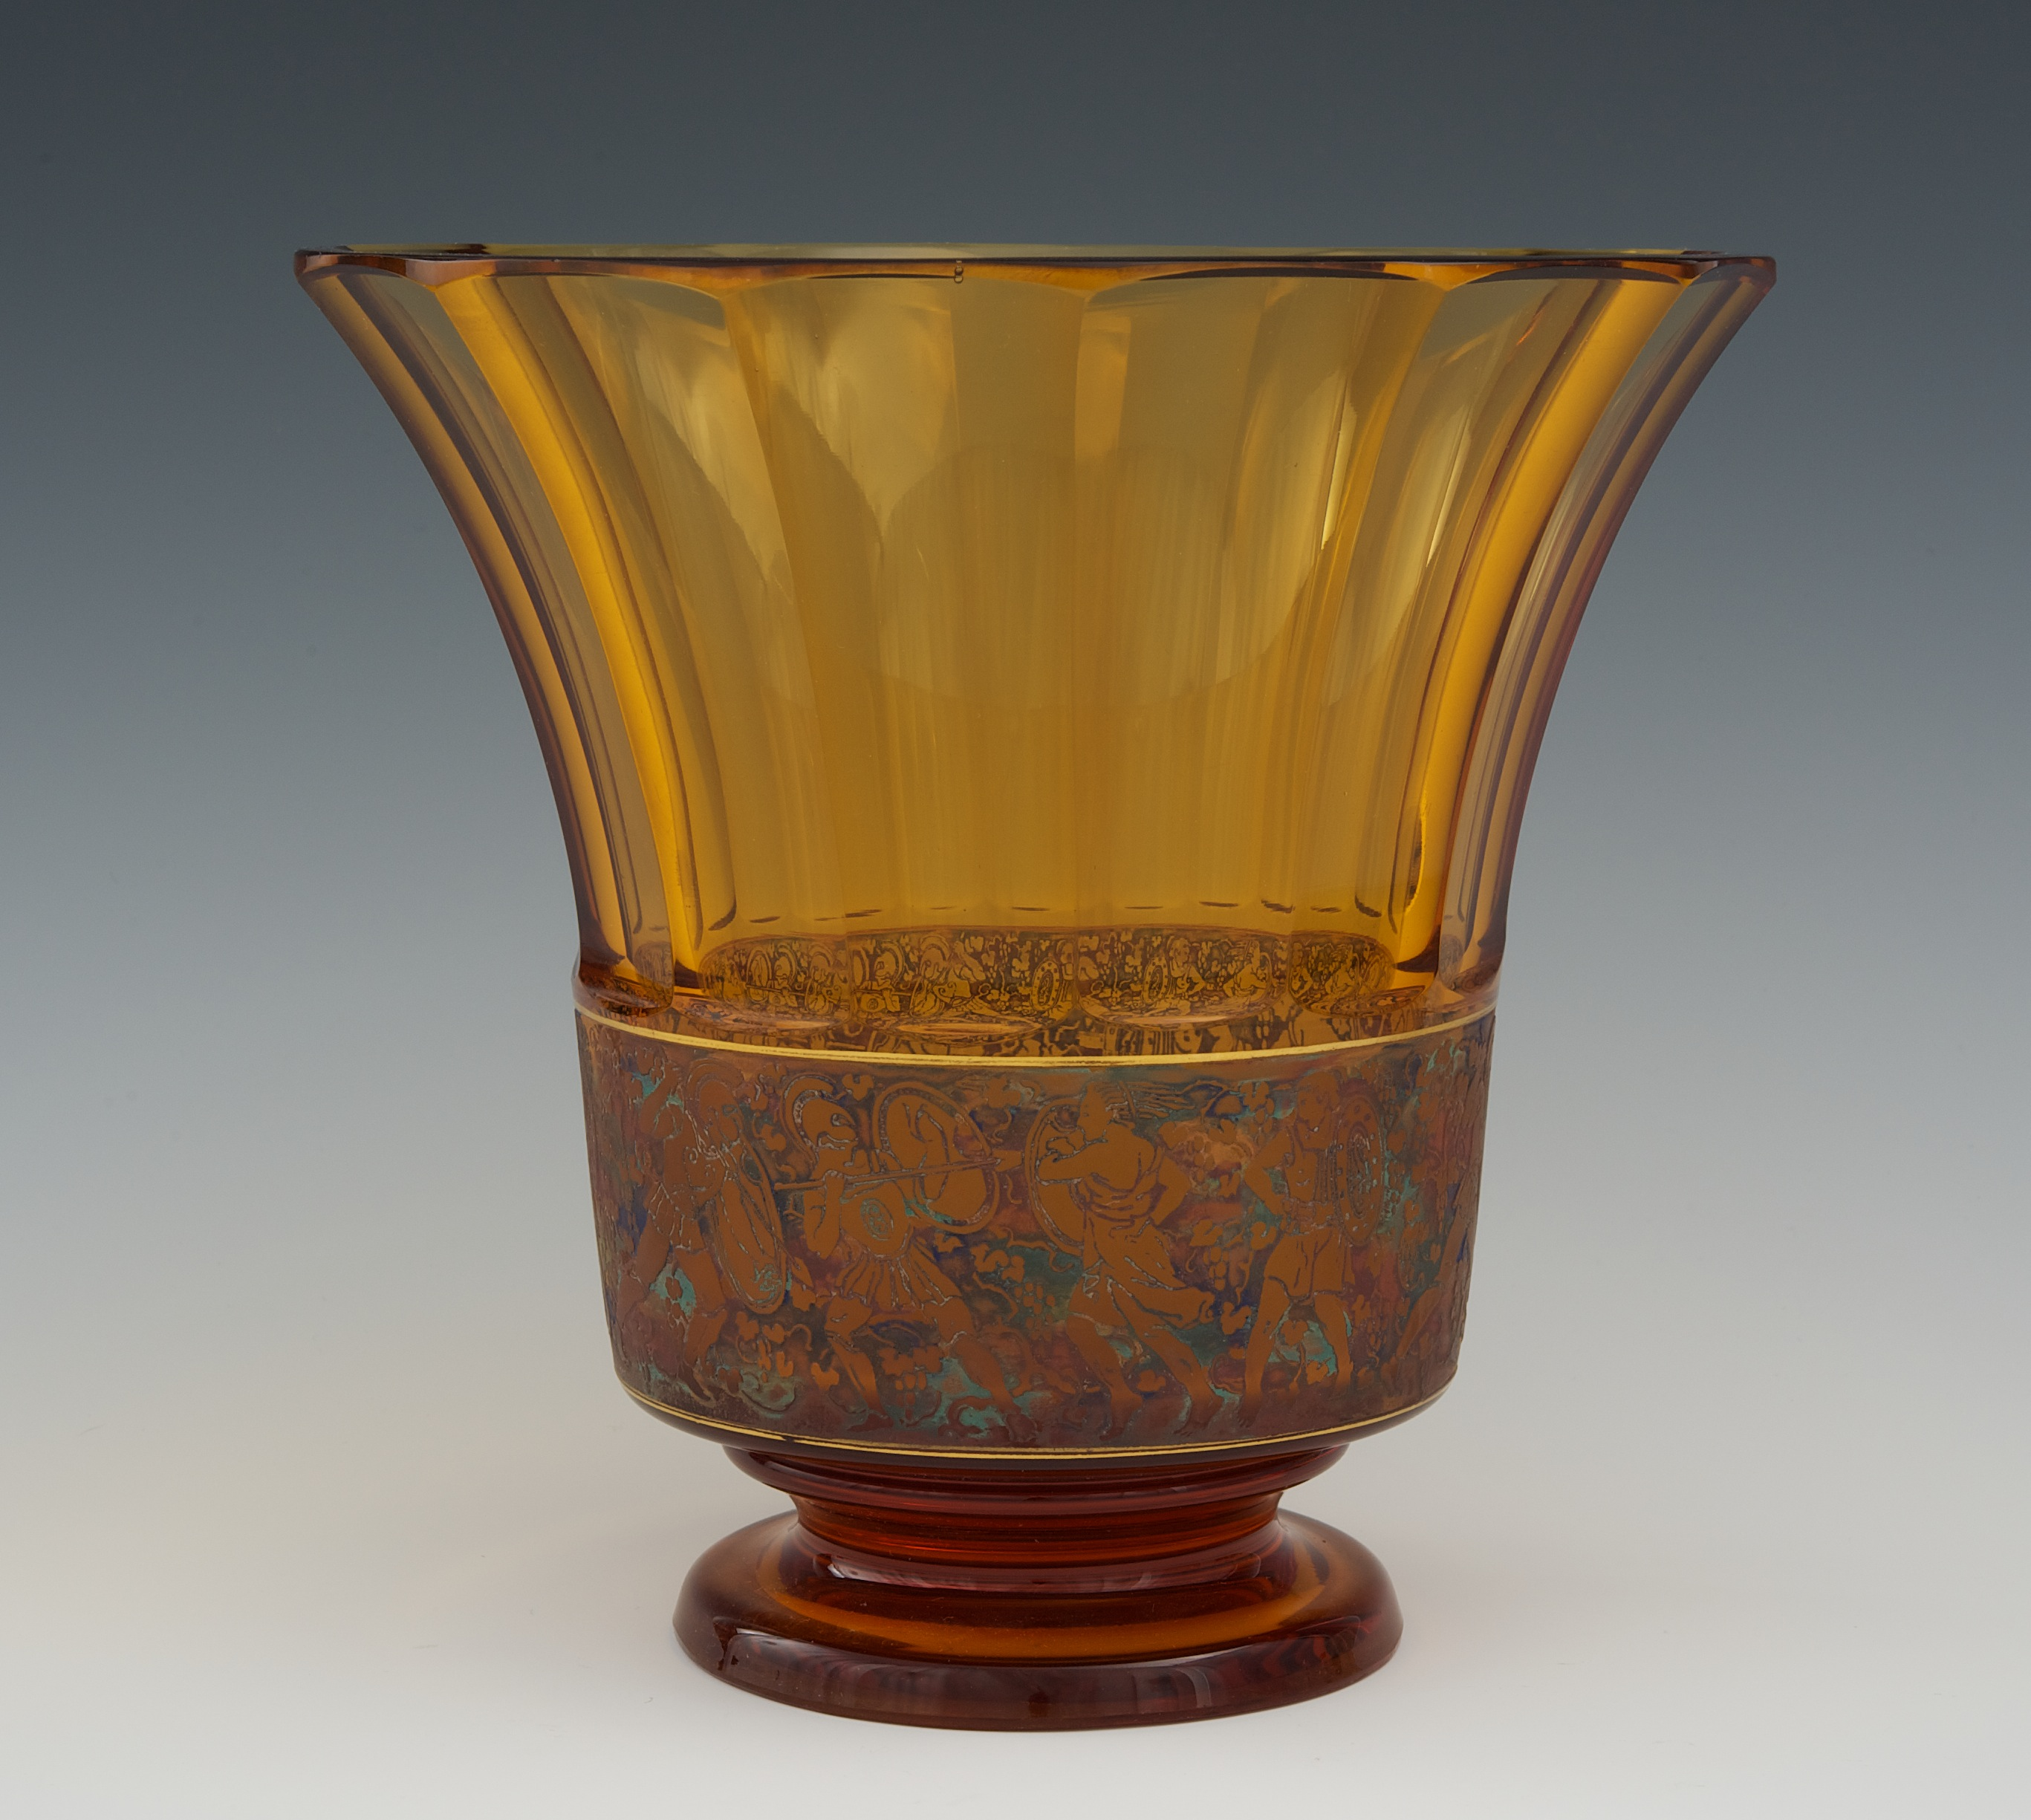 A moser carlsbad faceted amber glass vase 092410 sold 1495 a moser carlsbad faceted amber glass vase reviewsmspy